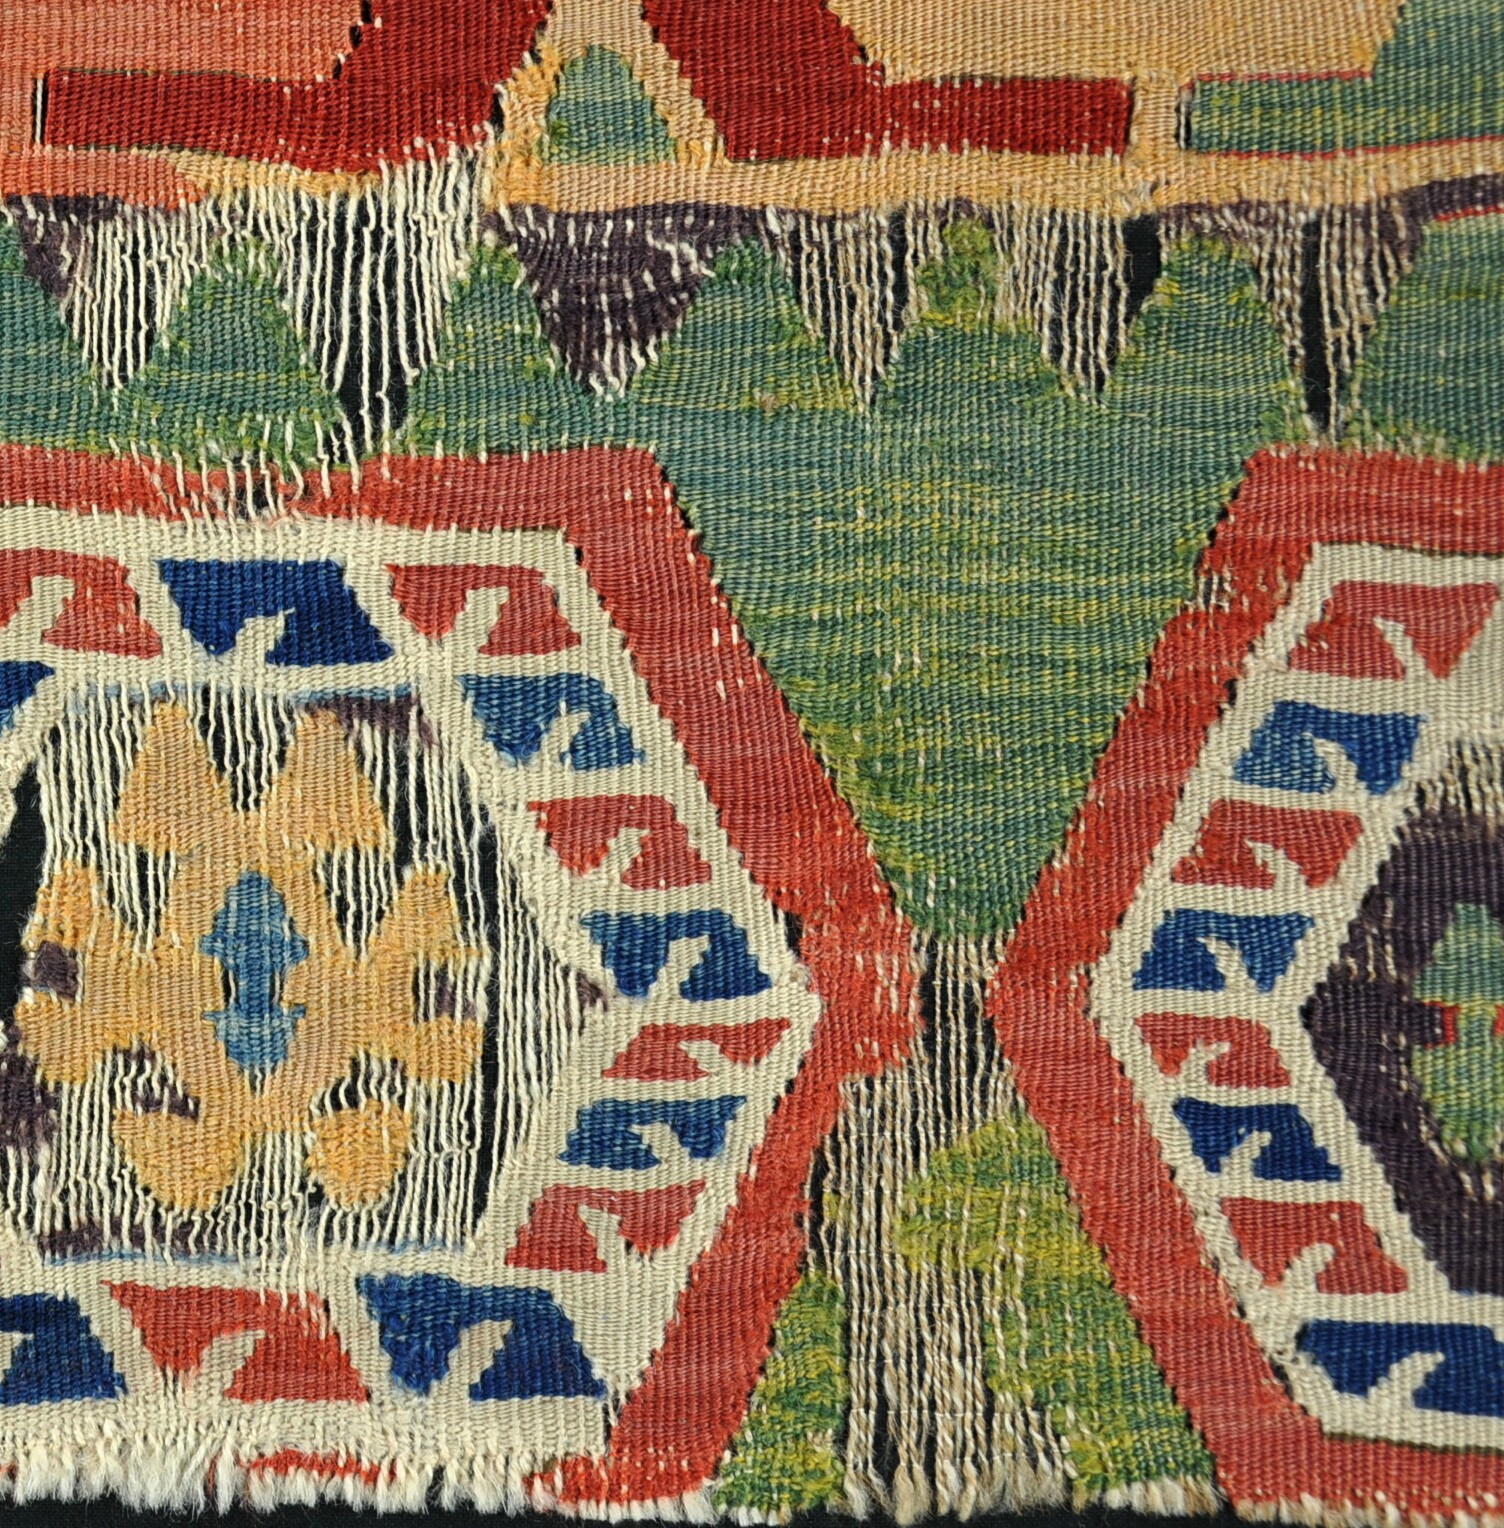 Early Green Ground Konya Kilim Fragment